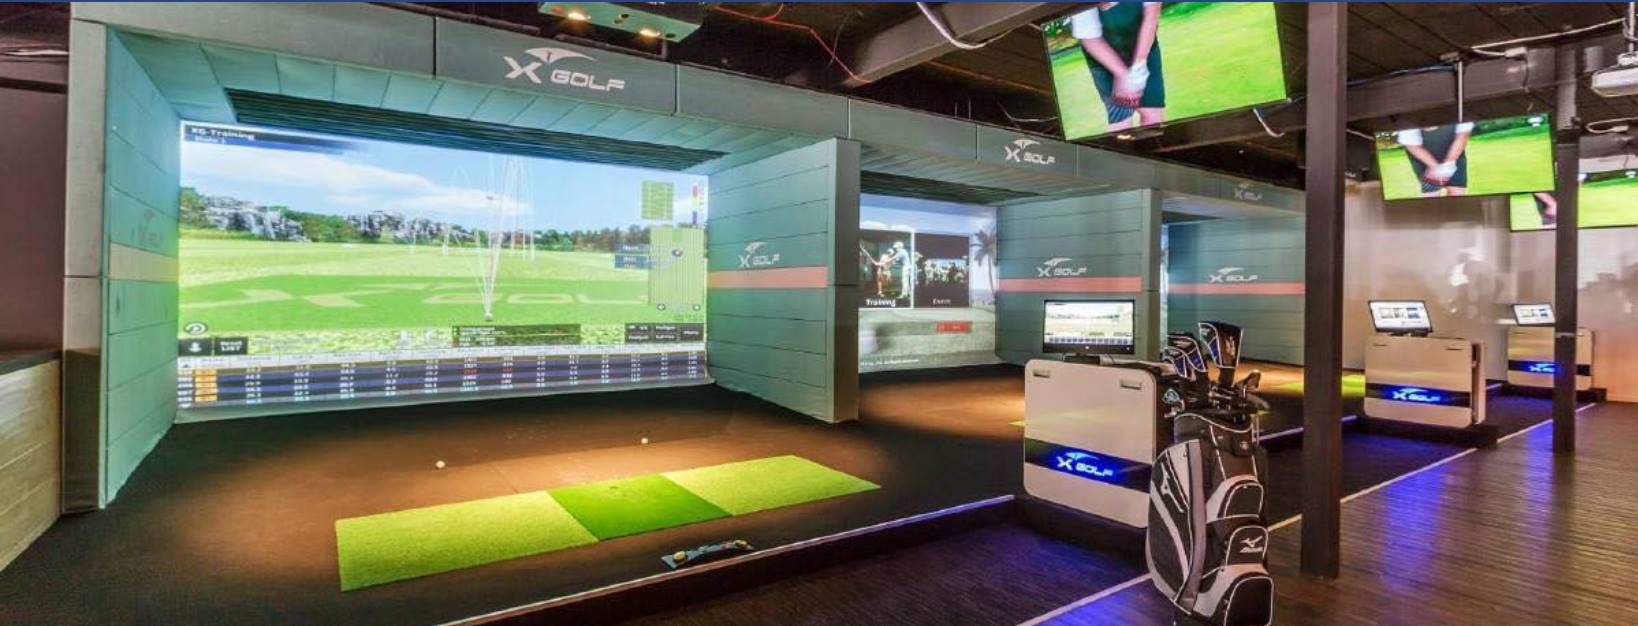 X-Golf: now with 4 locations in Mich.